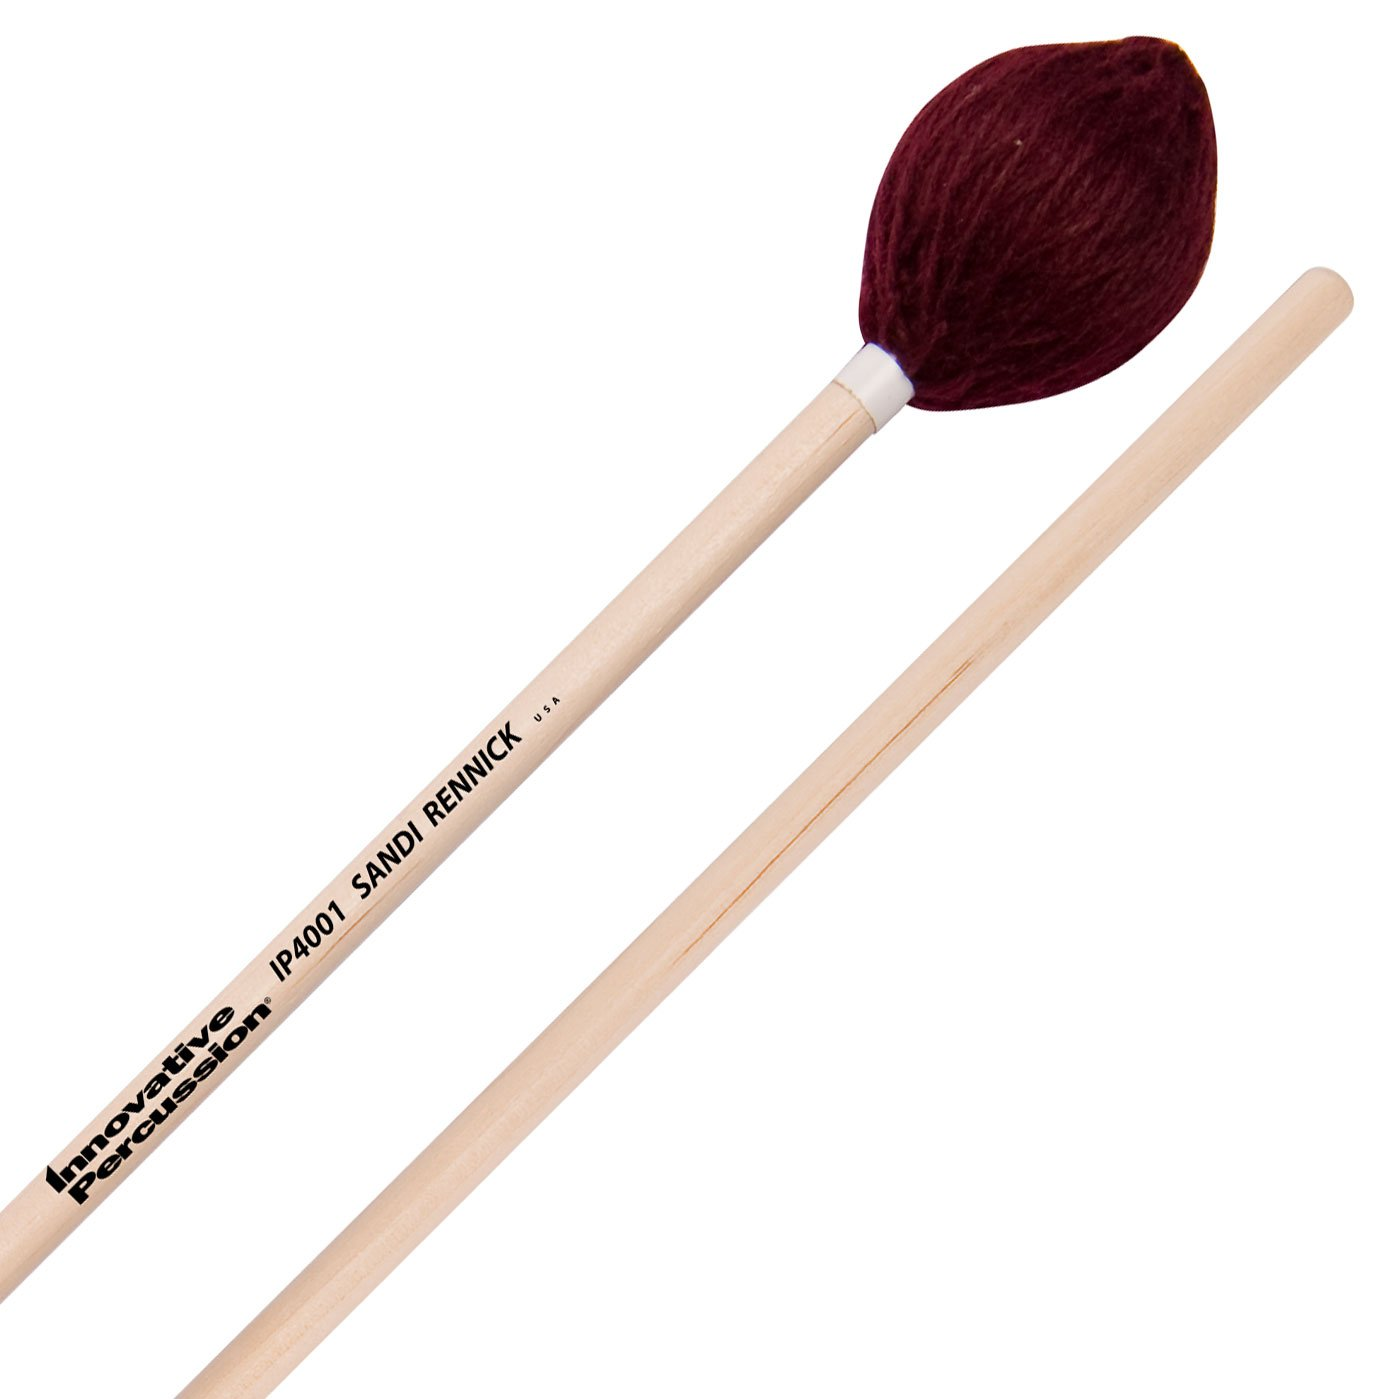 Innovative Percussion - Sandi Rennick Series Marching Marimba/Xylophone/Vibraphone Mallets-Percussion-Innovative Percussion-IP4001: Soft Marimba-Music Elements